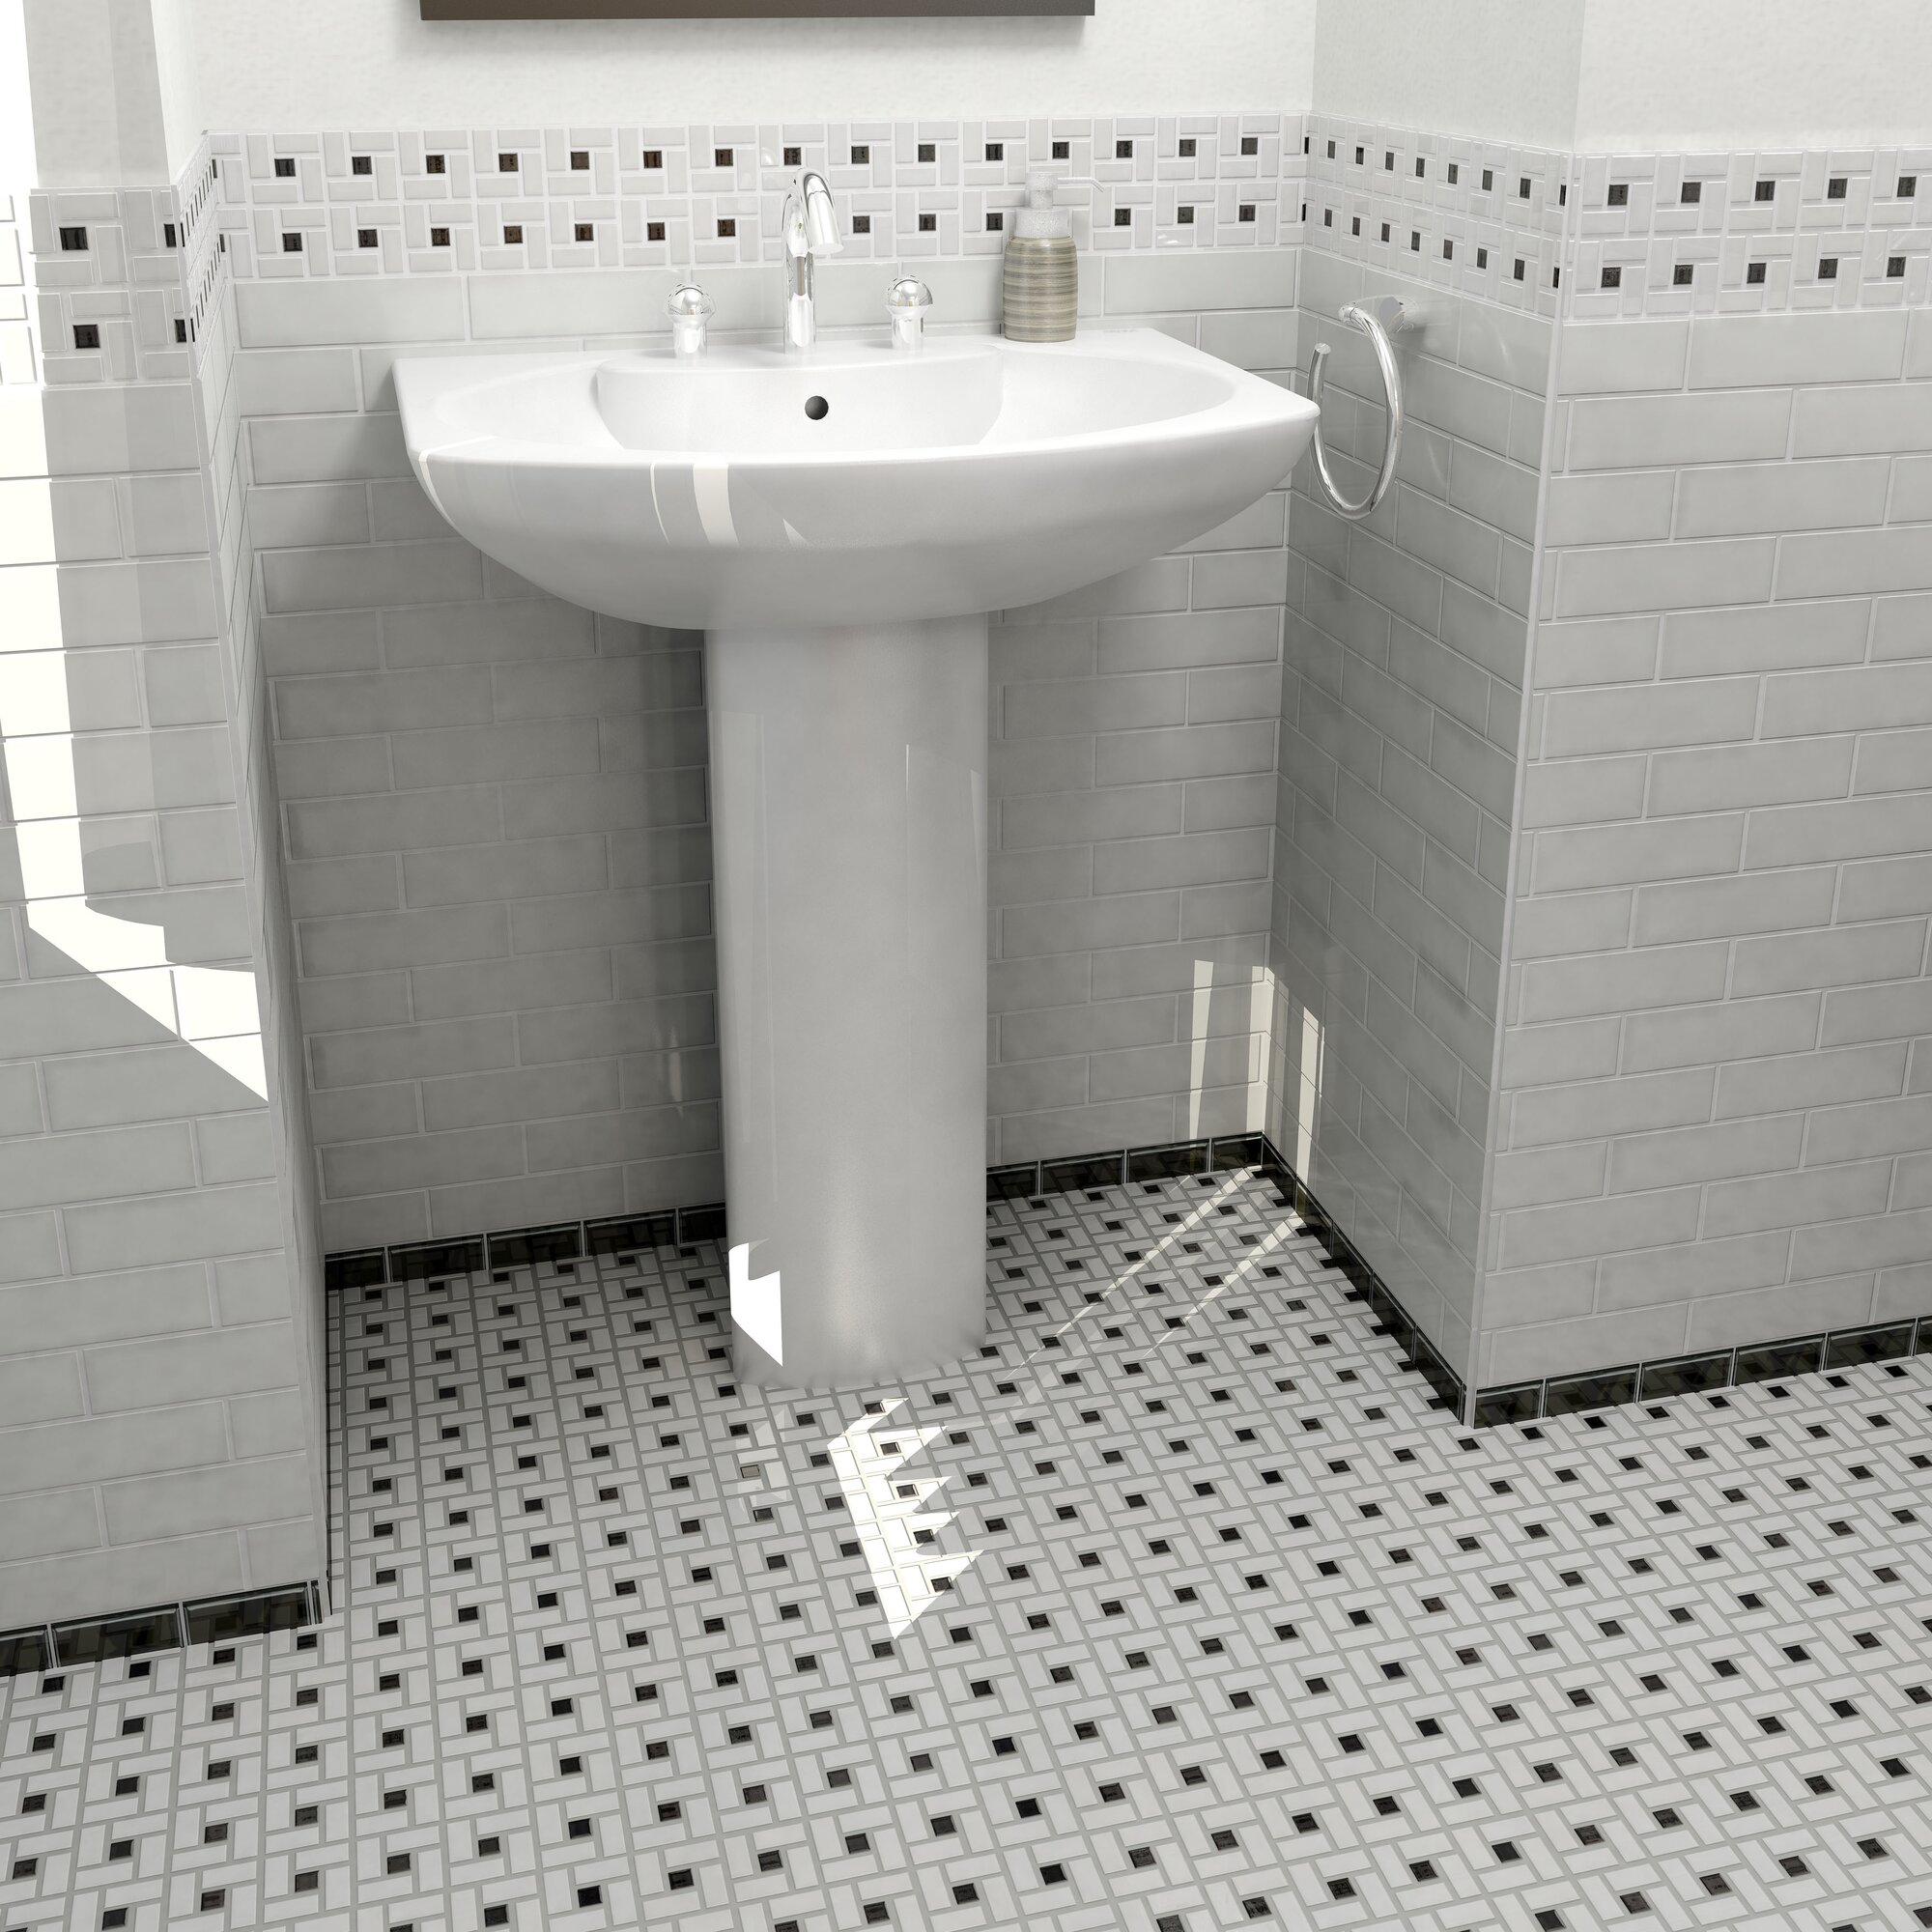 Elitetile Retro 12 5 Quot X 12 5 Quot Porcelain Mosaic Tile In